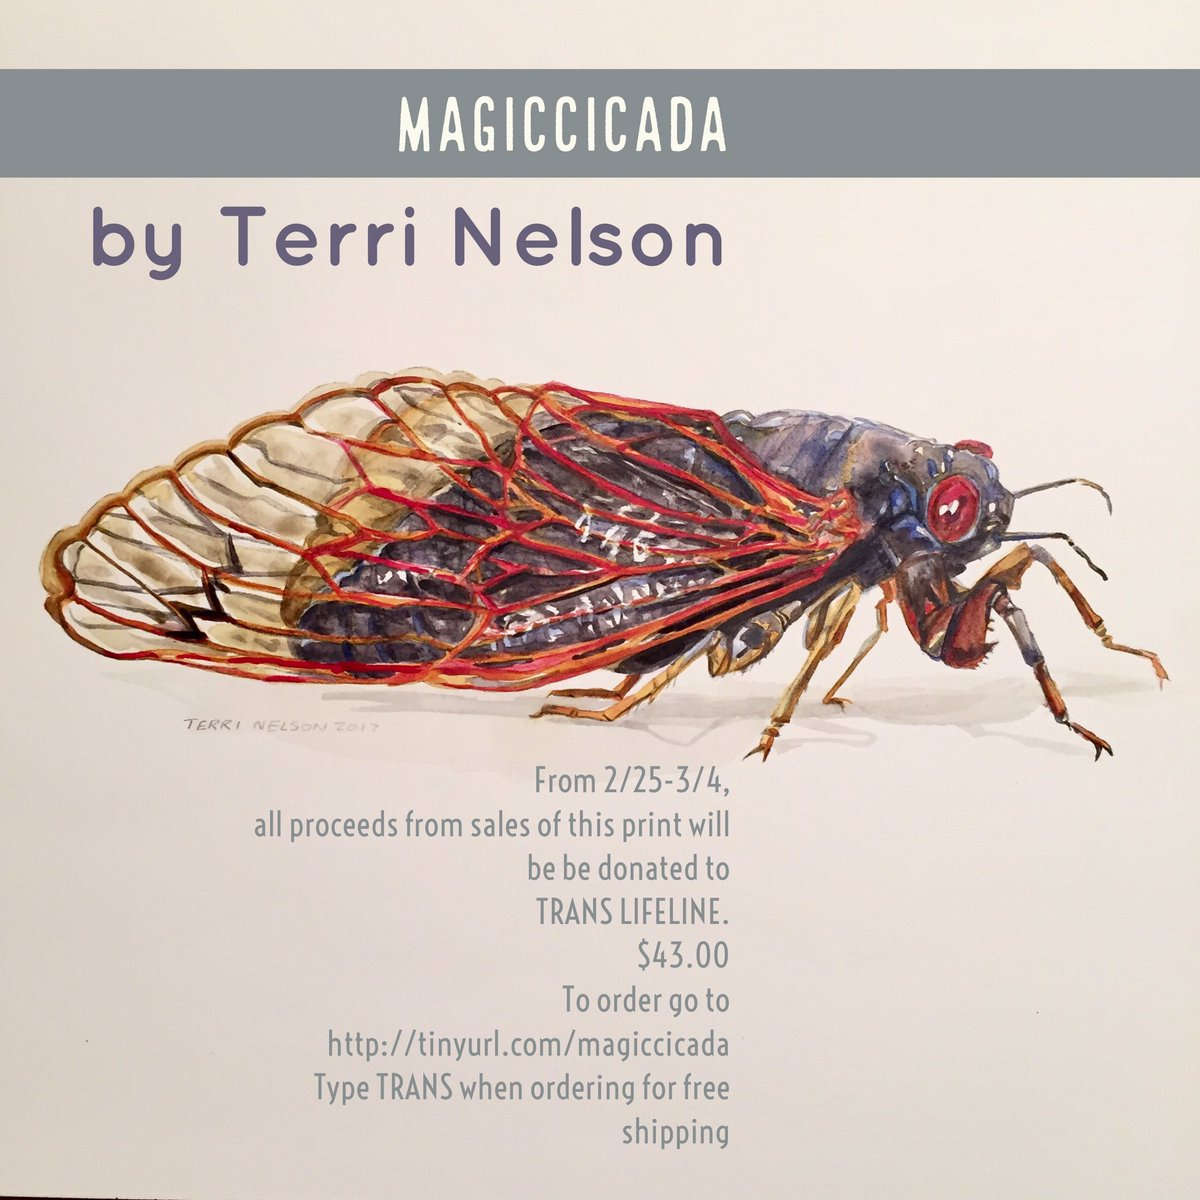 "For the week of Feb. 26 through March 3, all proceeds from sales of this print will be donated to the Trans Lifeline.  Type TRANS in when you order to get a $12.00 discount in shipping and handling, too, because you're a nice person.  Why a cicada?  Well, this isn't any old cicada.  The Periodic Cicada has a mysterious life cycle in which ALL of them spend either 17 or 13 years underground in their juvenile form, and then at an unknown signal, they emerge all at once and take on their adult forms.  This seemed like a pretty apt metaphor for the lives of all the trans people I've known.   When the Republicans decided to discriminate against trans kids recently, I decided to do what I can to help the Trans Lifeline.  So, for this week, I will be donating every bit of the proceeds for sales of this print to the Trans Lifeline.   (If you're wondering, it's called ""Magiccicada"" because that really is part of the latin name for this species.)"